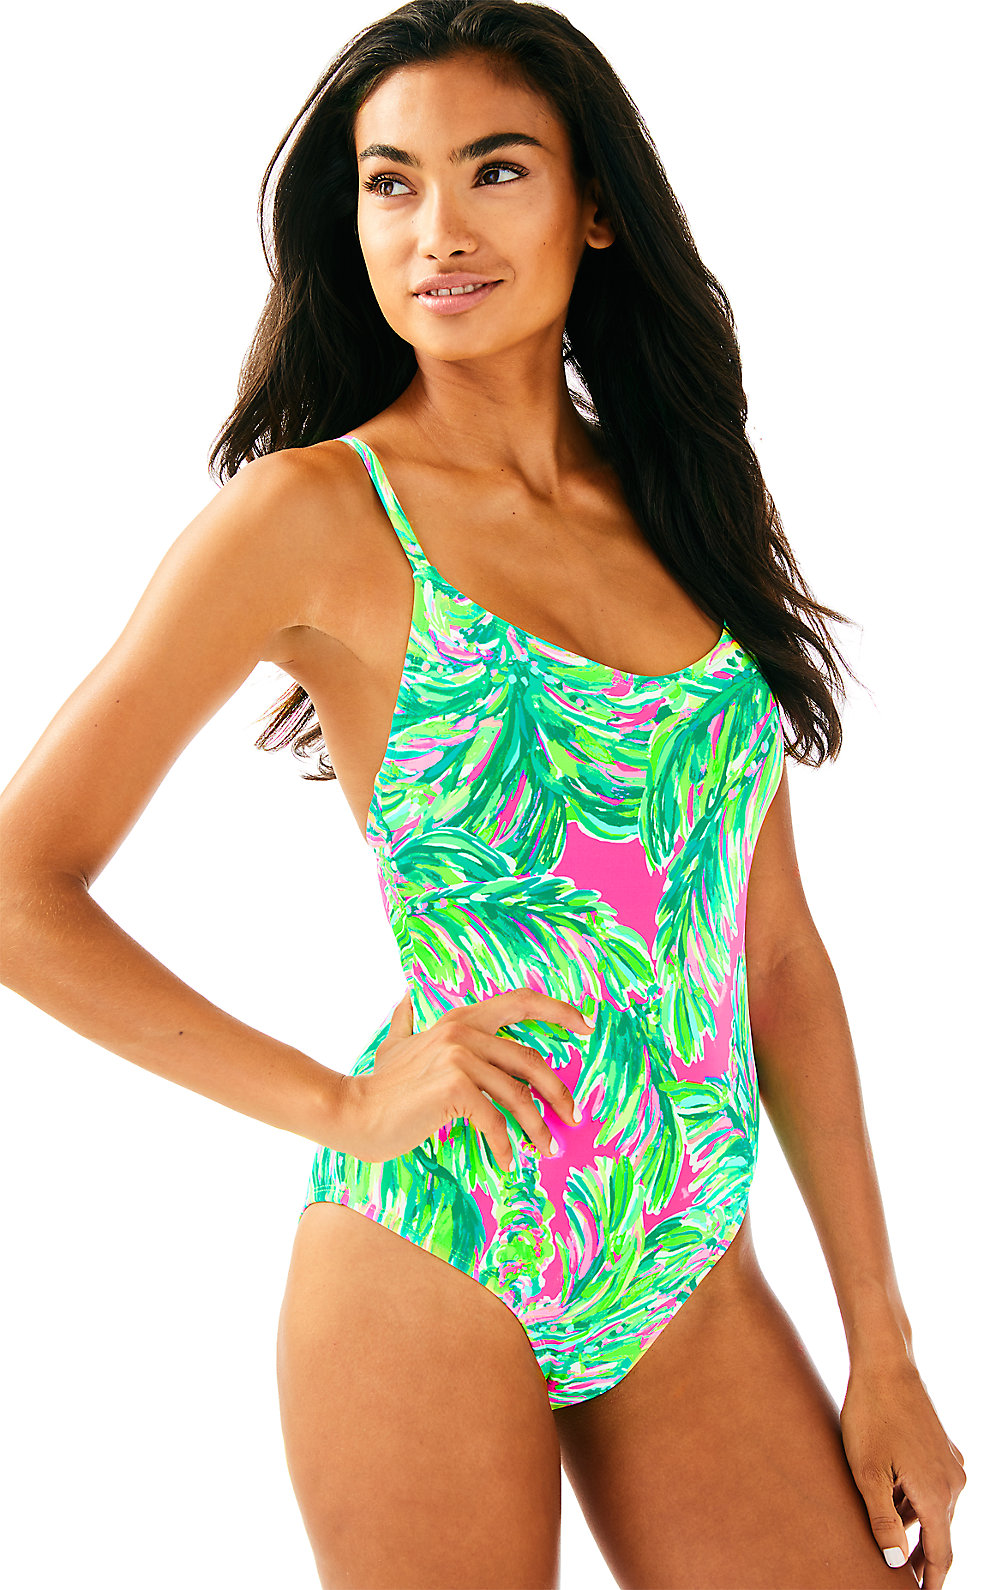 Lilly Pulitzer Lilly Pulitzer Azalea One Piece Suit